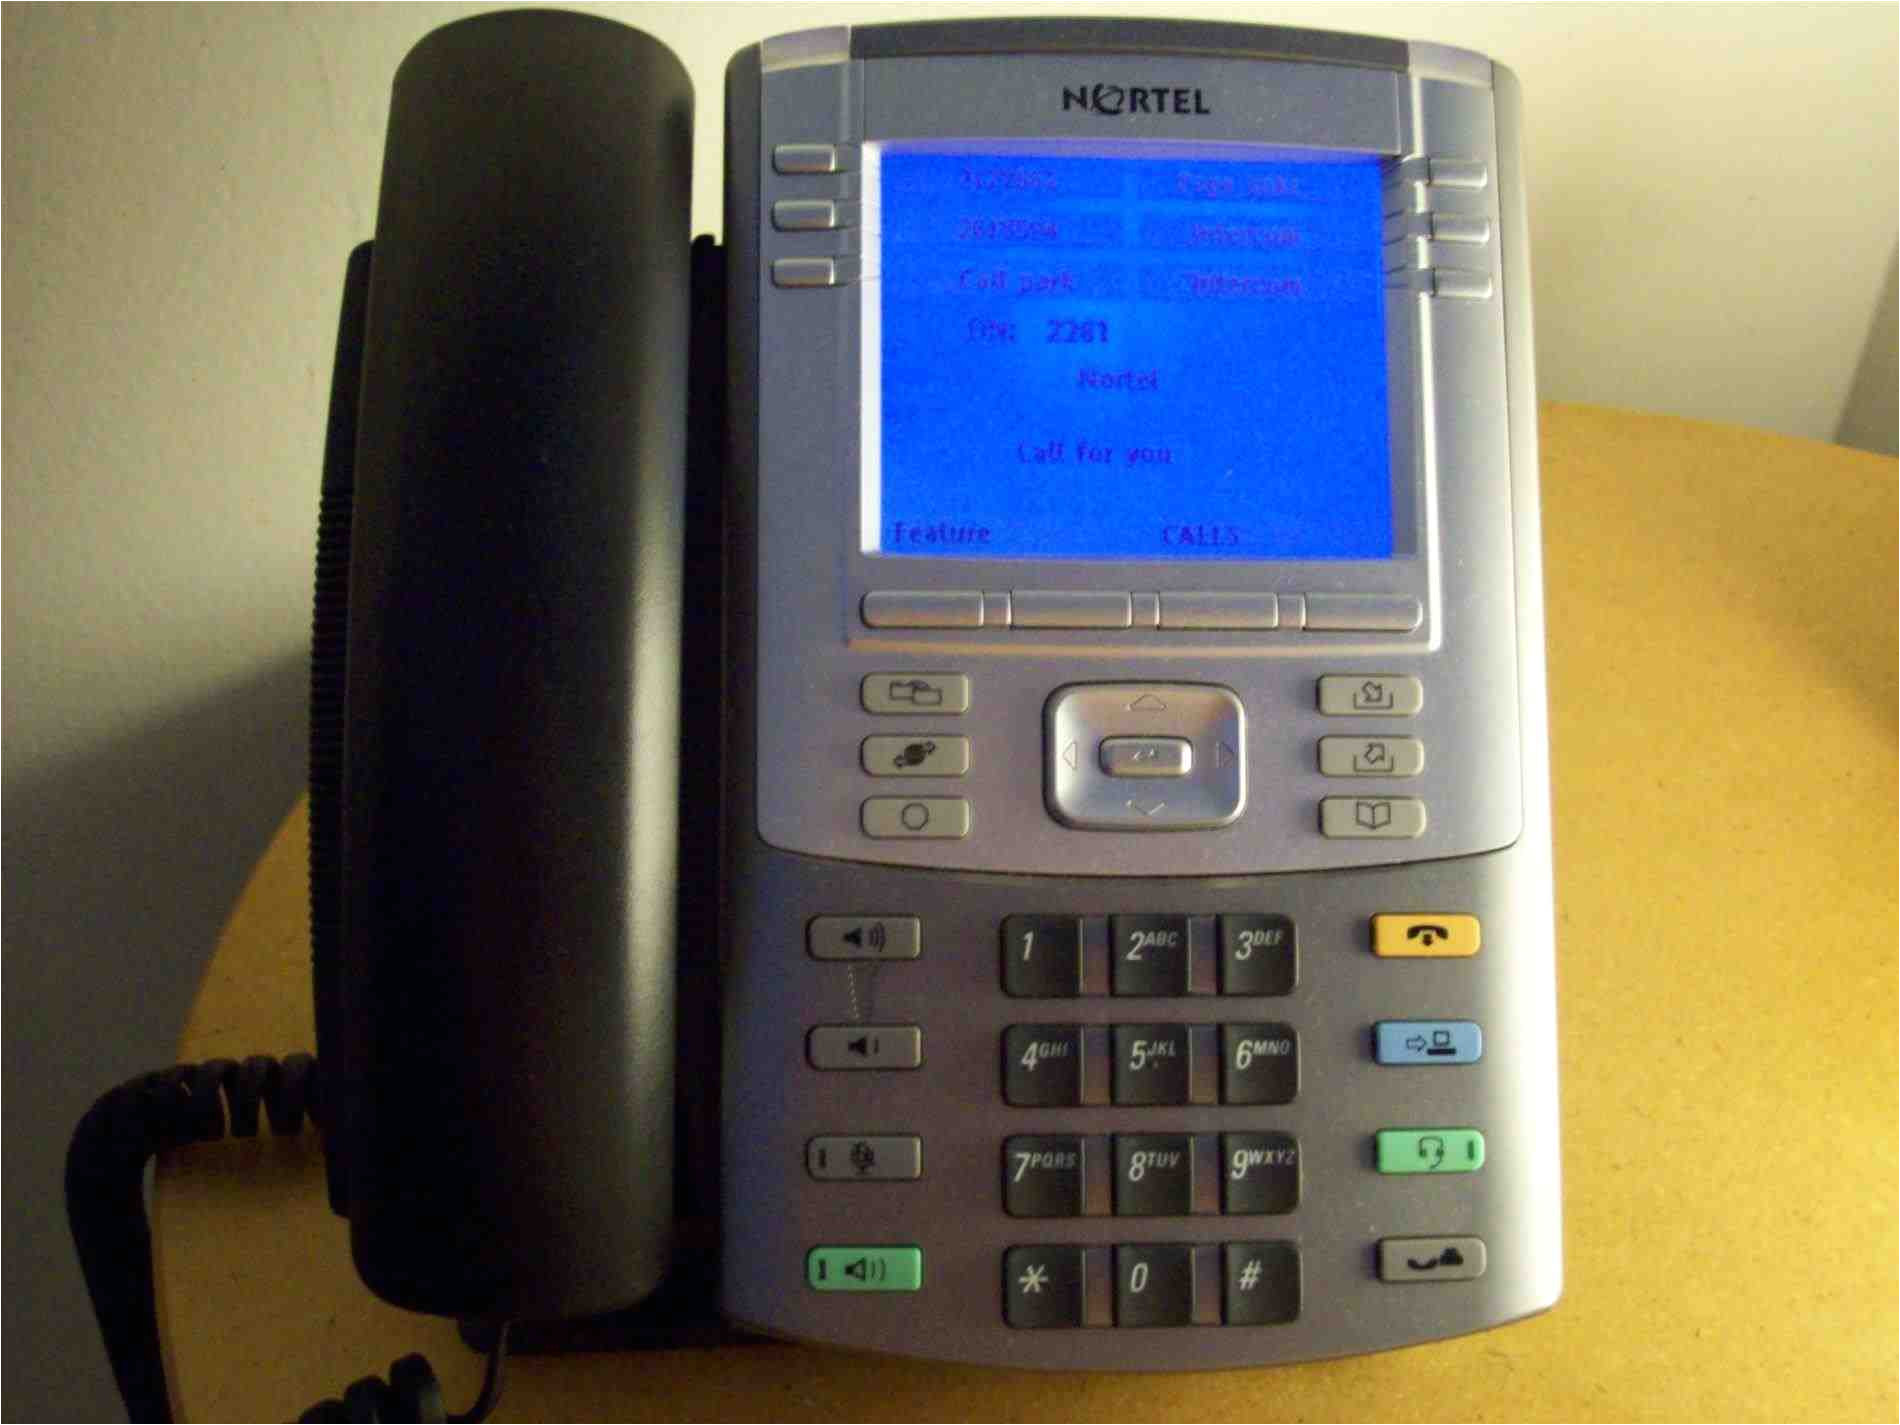 series black pbx buy system business telephone buy avaya phone template phone system business telephone how to design good call flows jpg